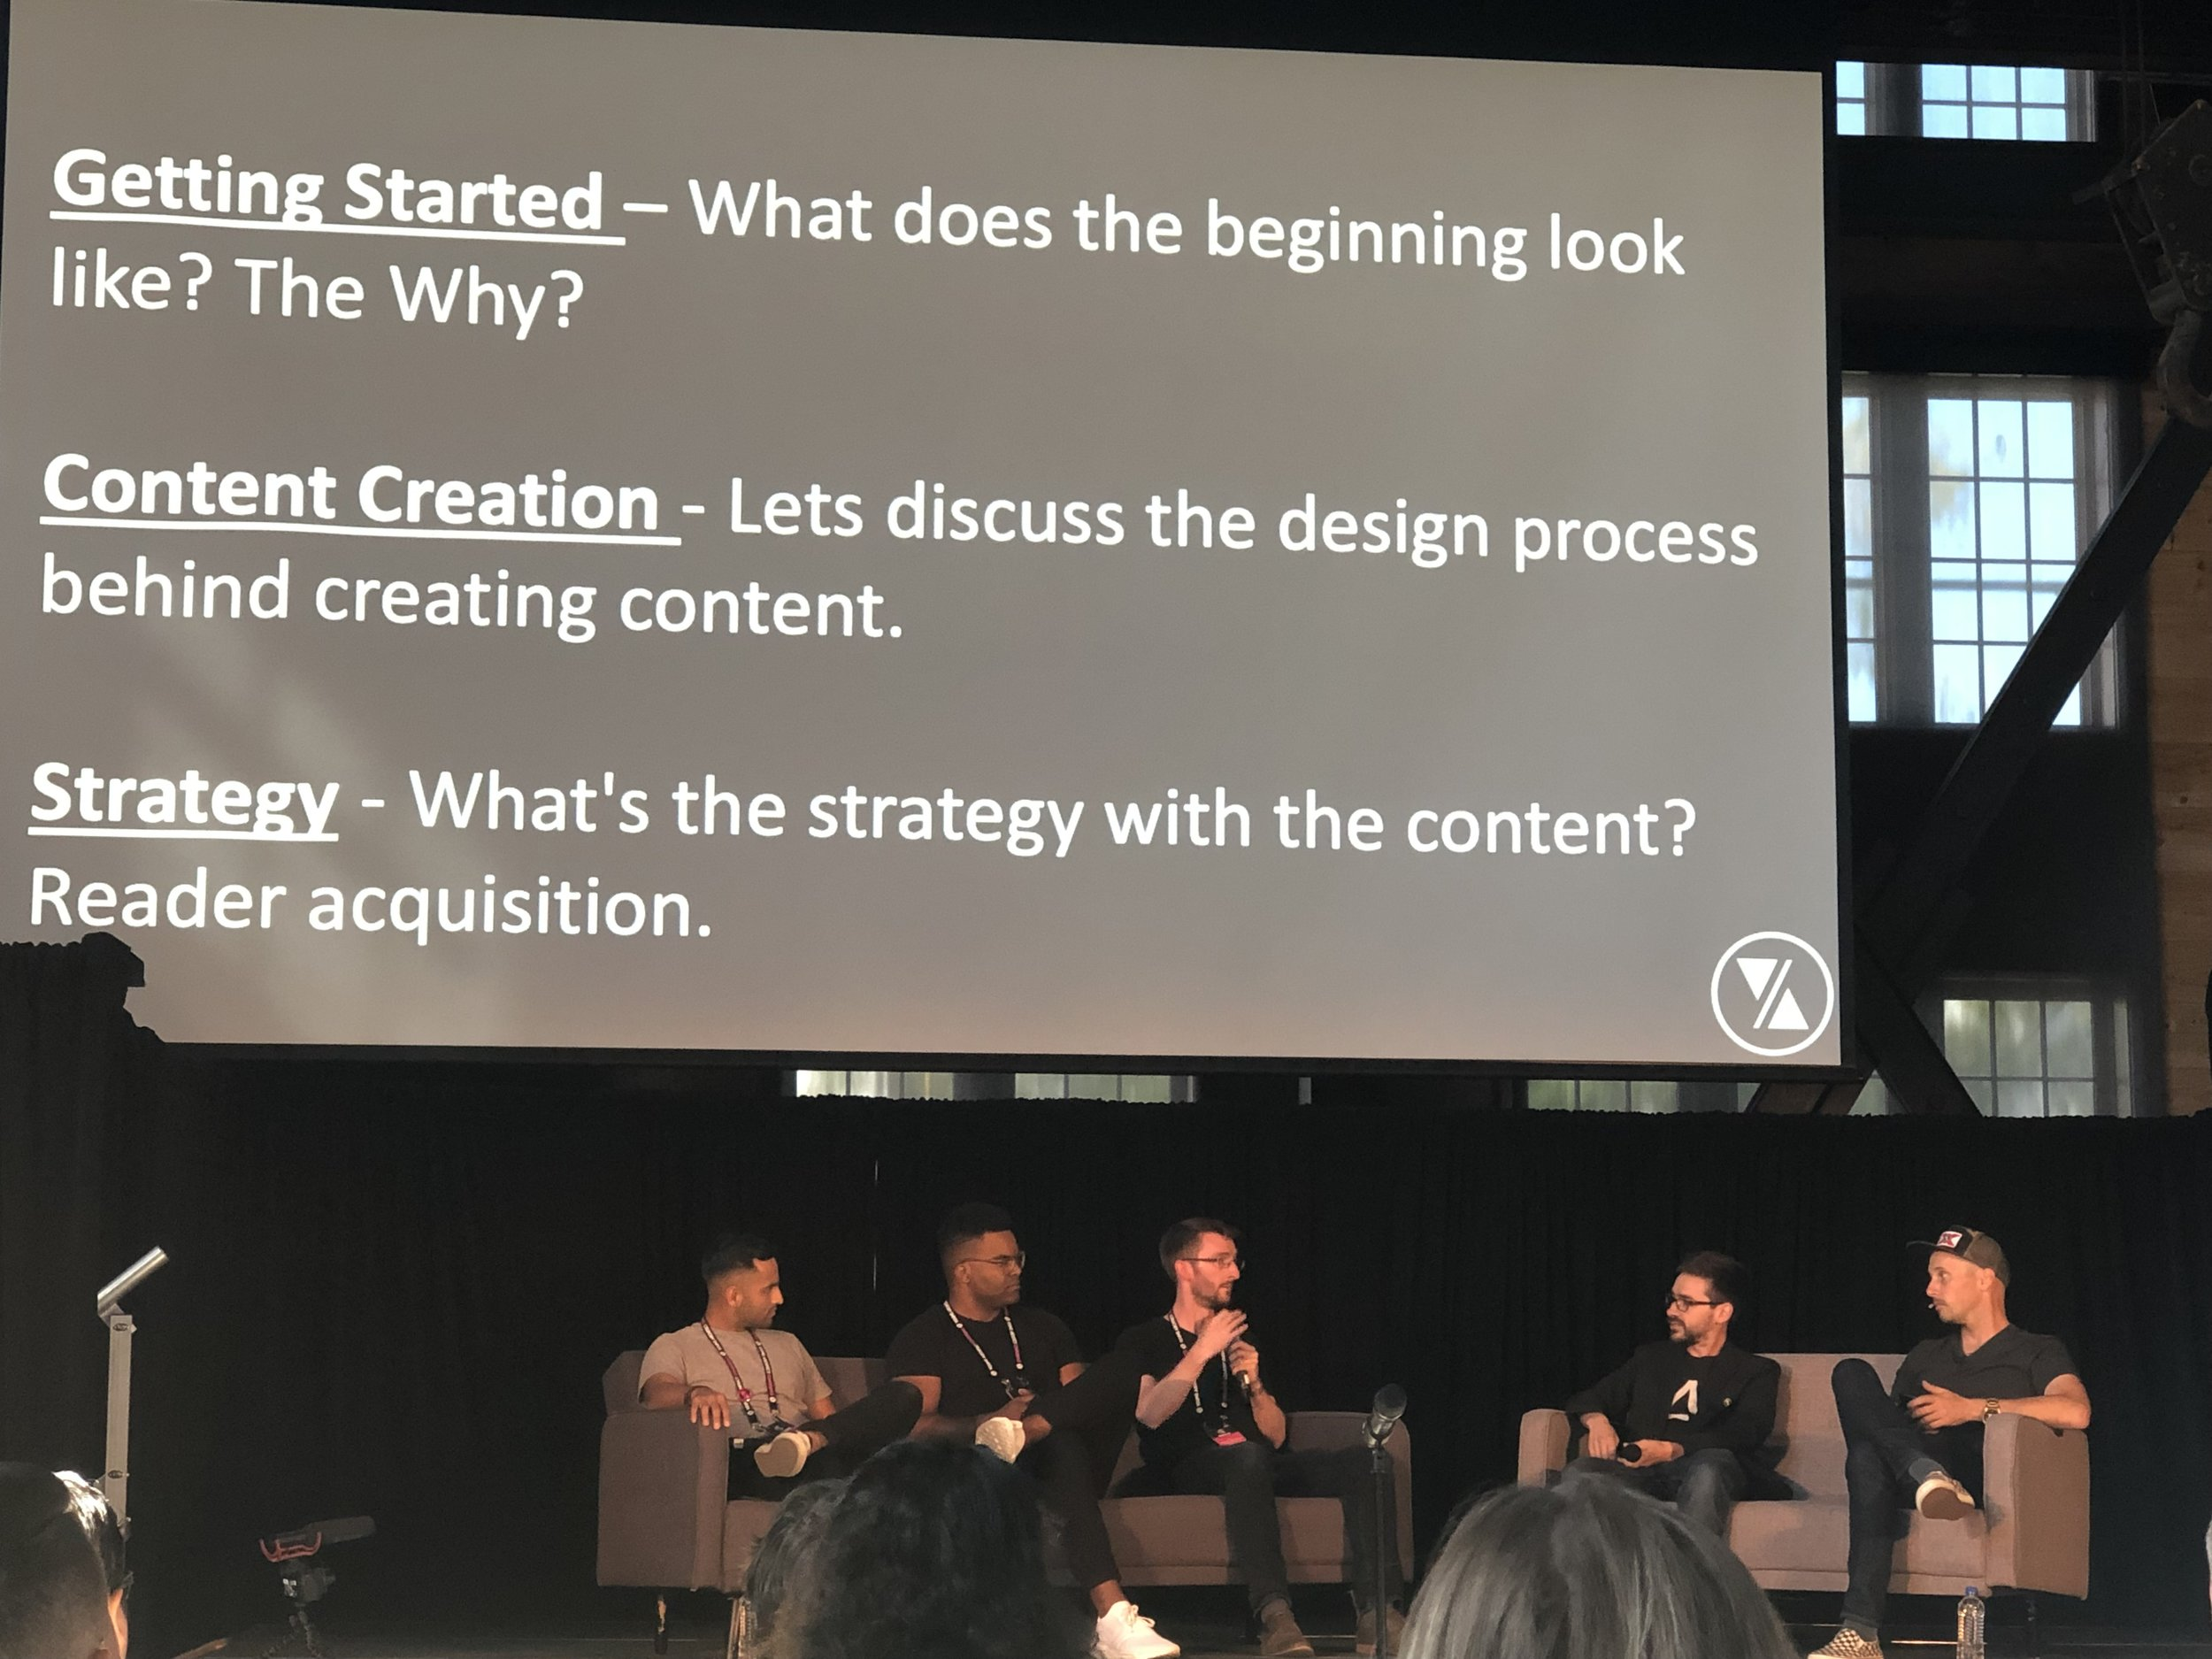 A discussion on content creation with Mike, Drew, Sean Joyner of Archinect, Paul David Keskeys of Architizer, and  Youtuber  Joseph Echavarria